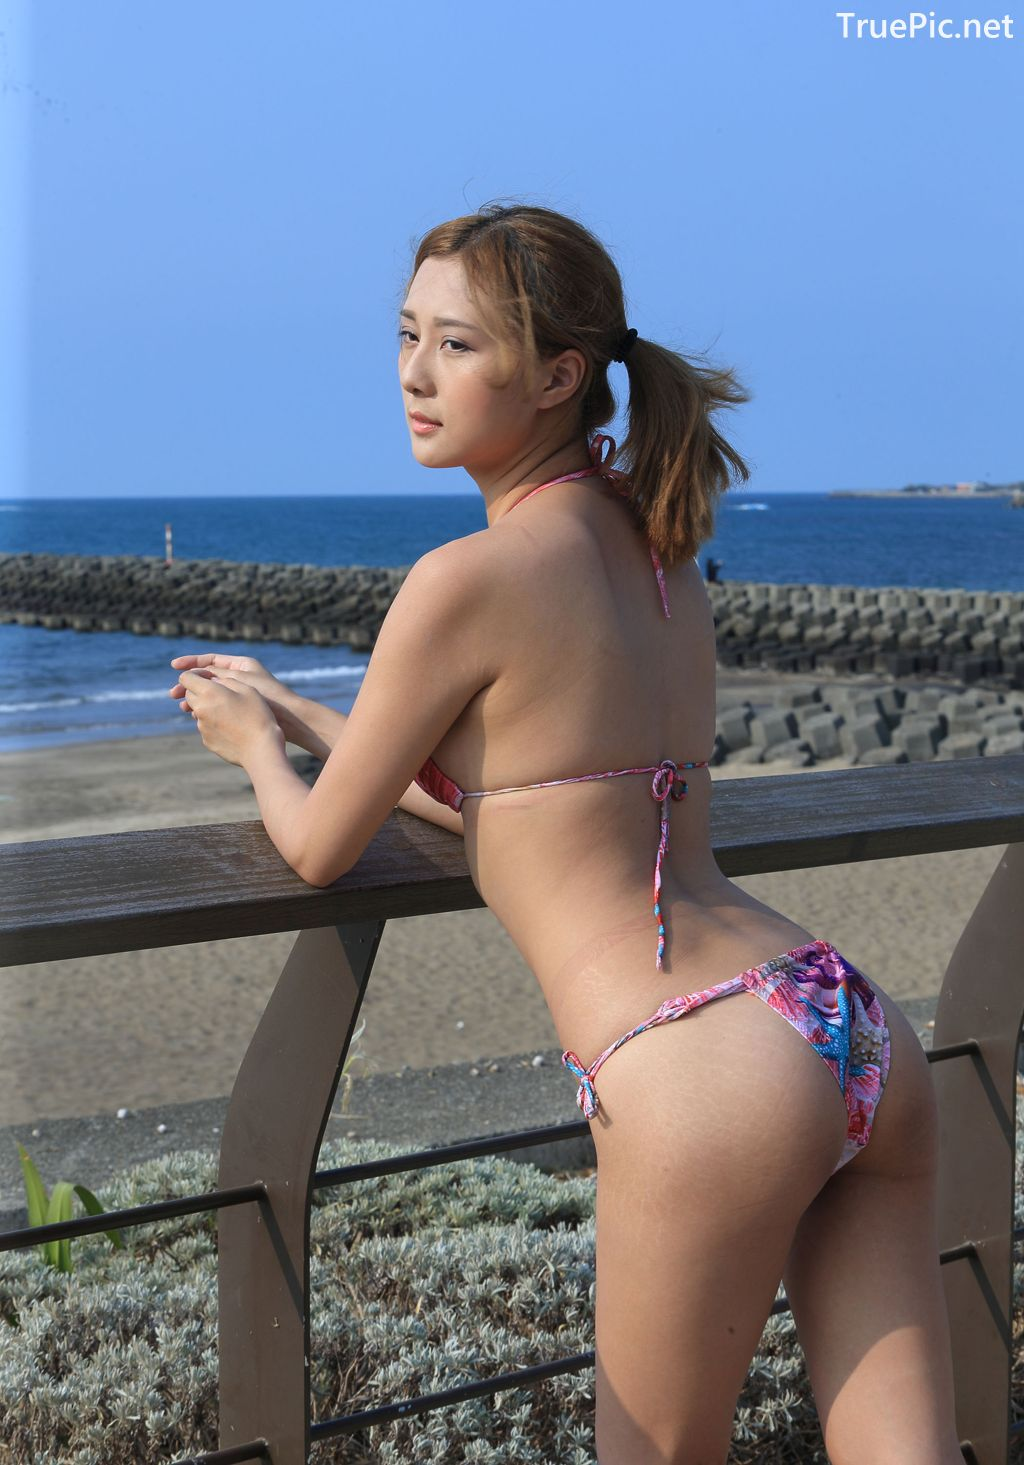 Image-Taiwanese-Model-陳郁晴-Young-And-Lovely-Bikini-Girl-TruePic.net- Picture-7